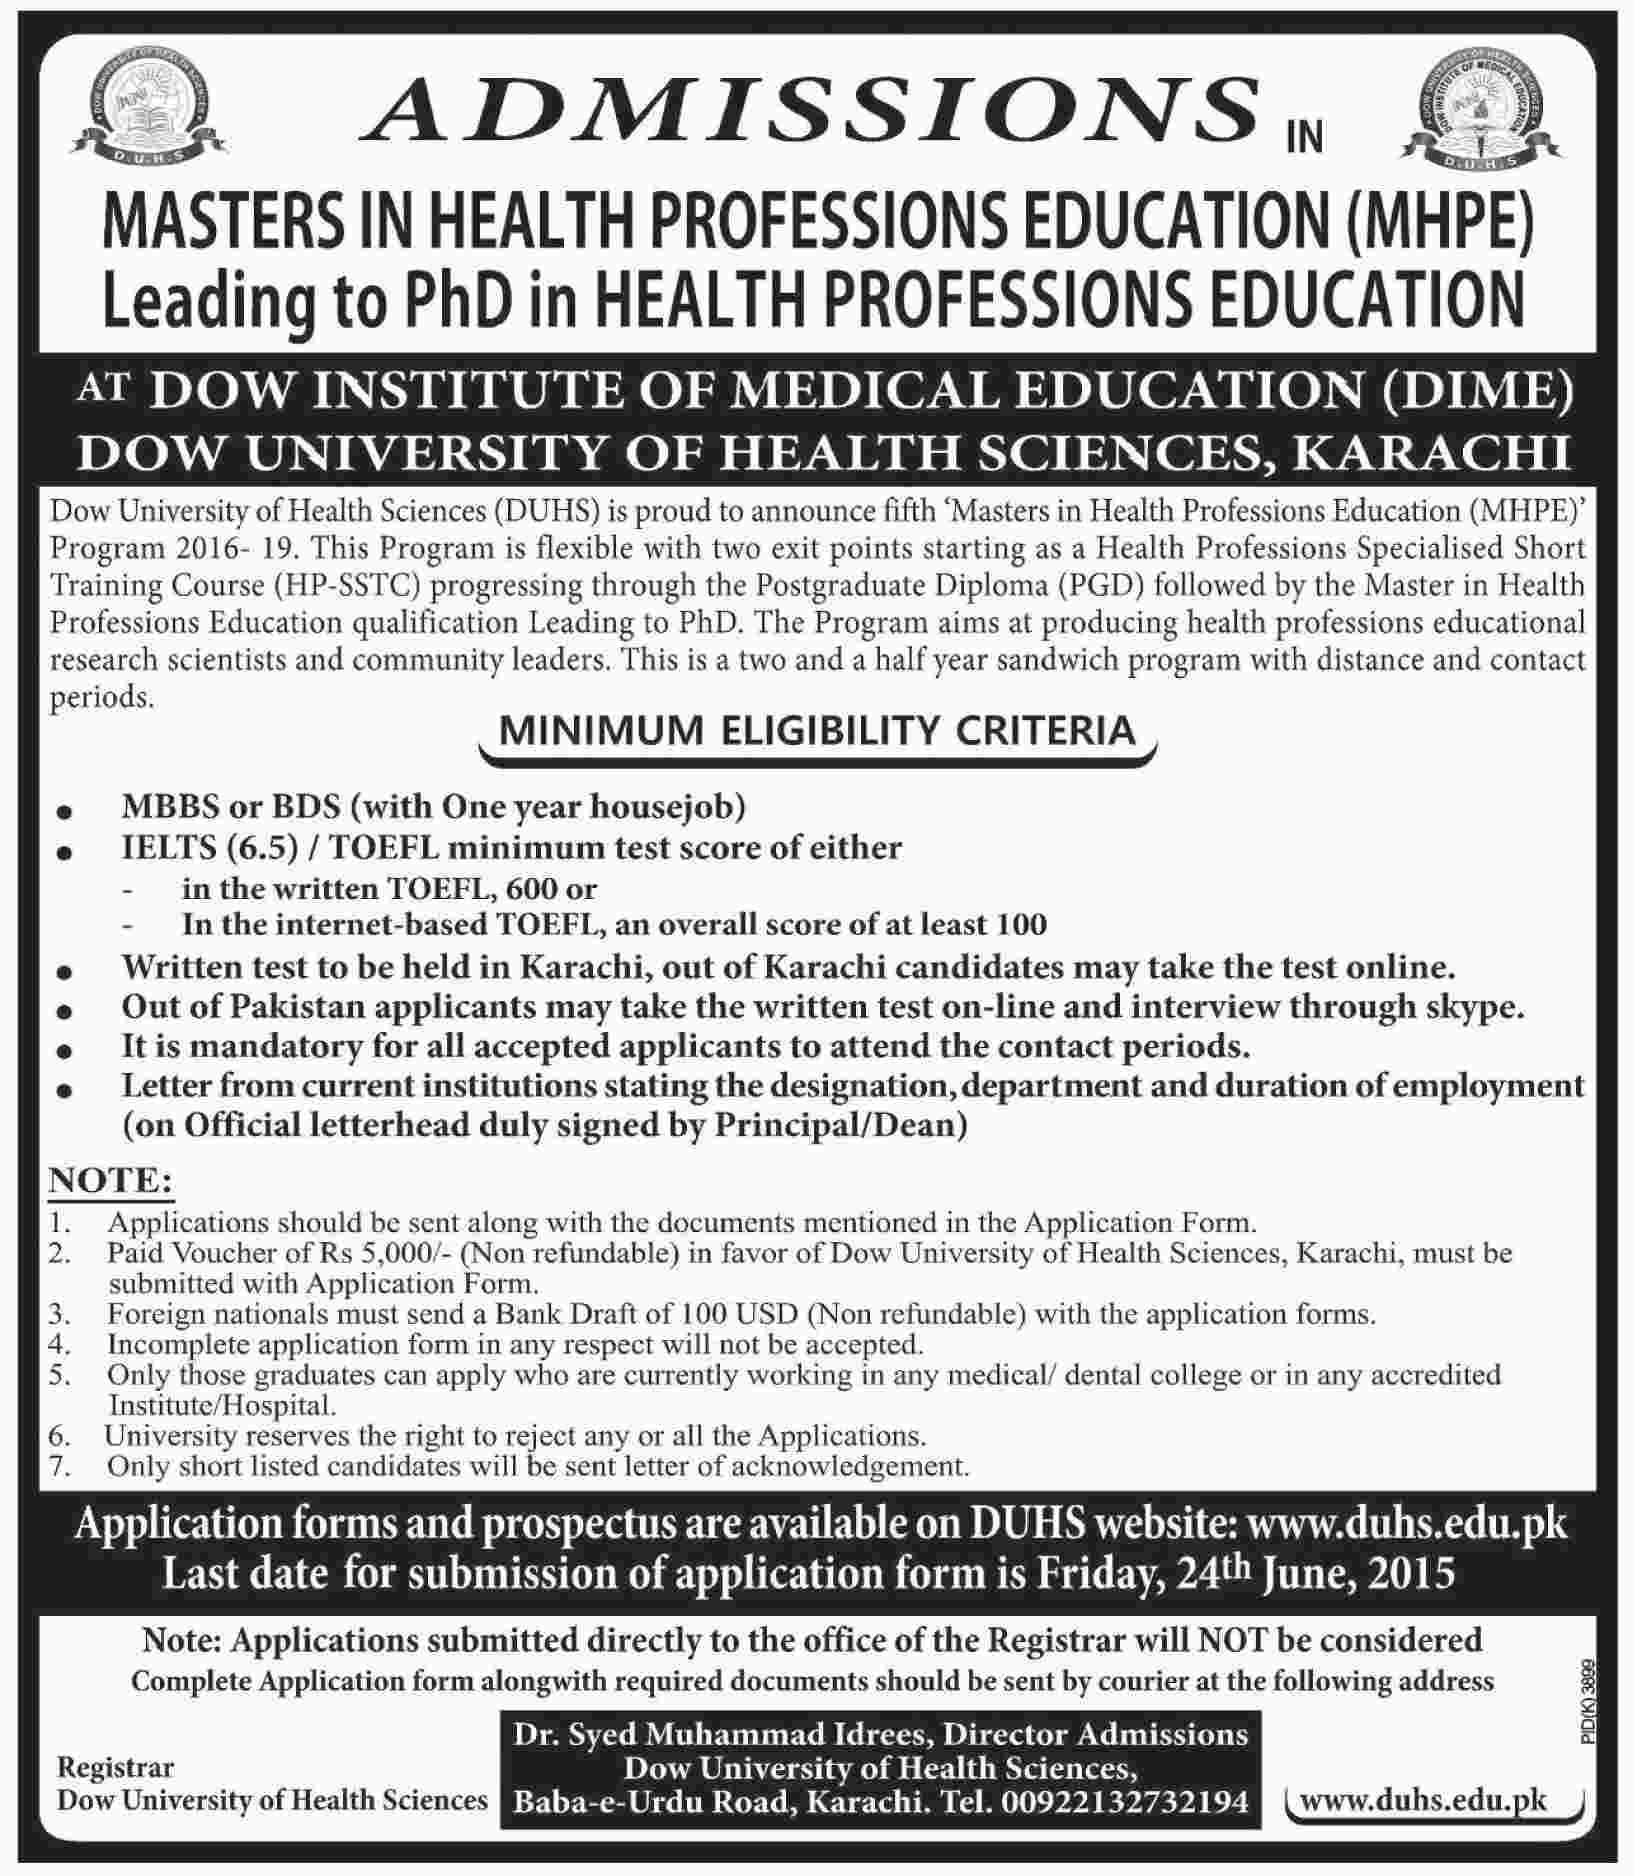 DOW University of Health Sciences Admissions 2016